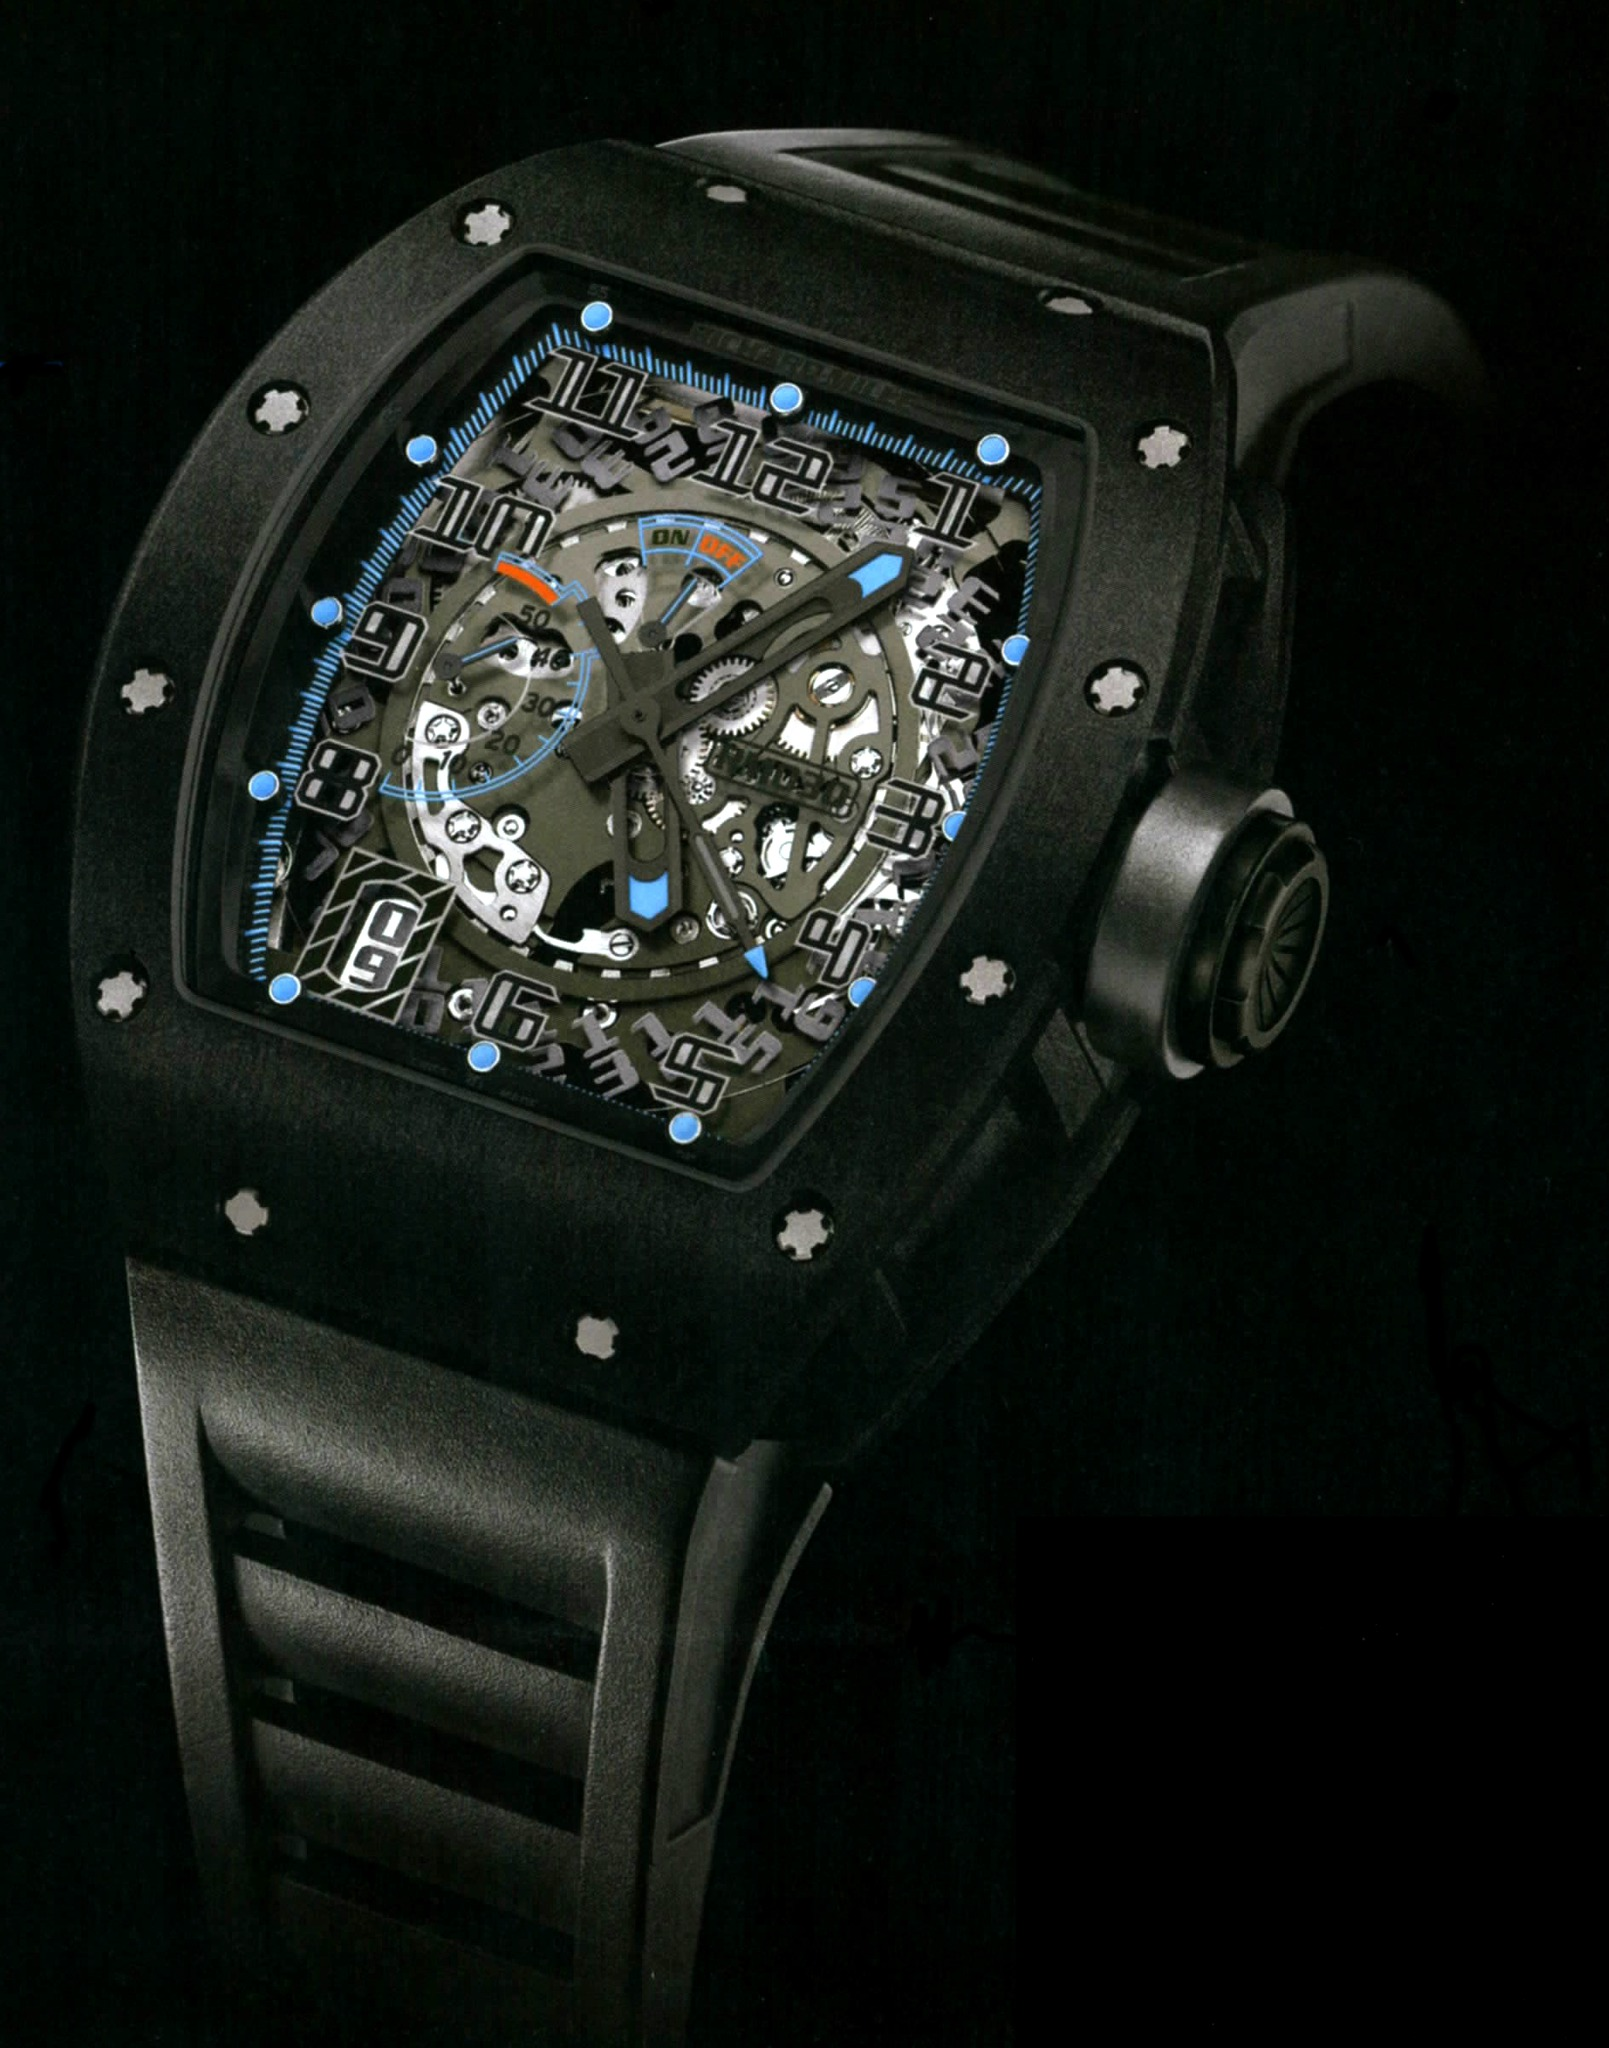 Replica Richard Mille RM 030 Watch RM 030 Kronometry 1999 Black DLC Titanium